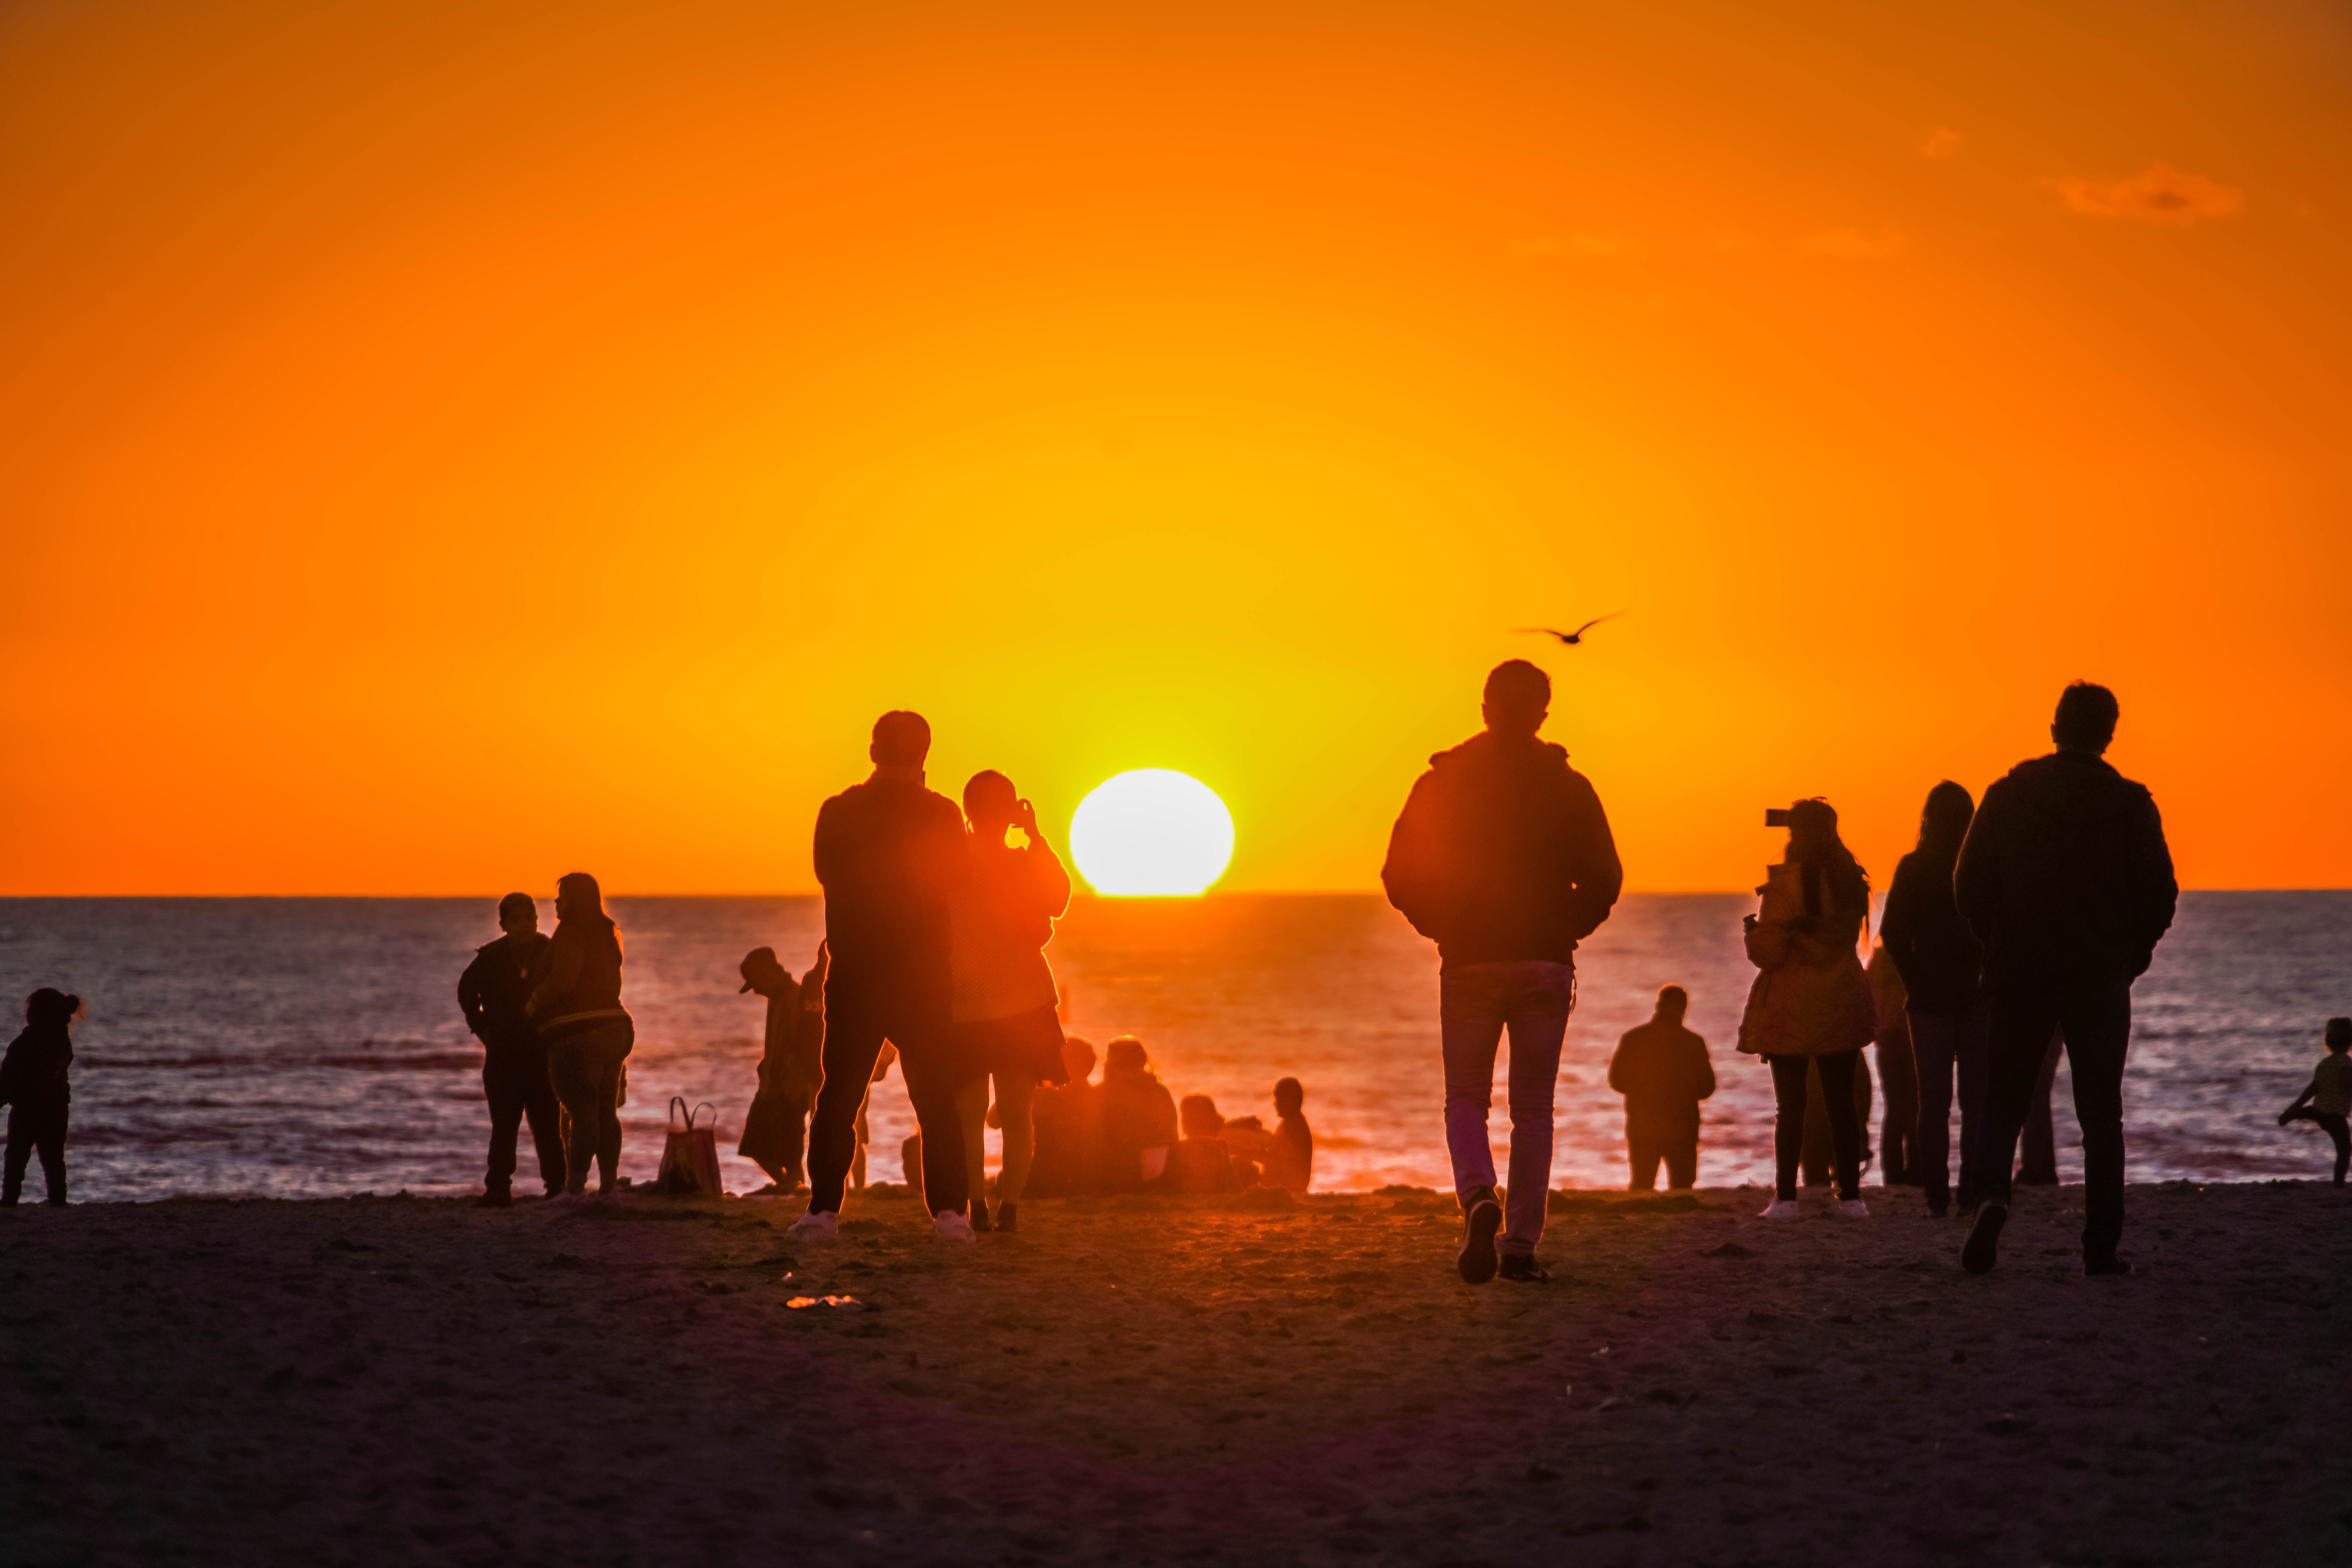 Families on beach at sunset